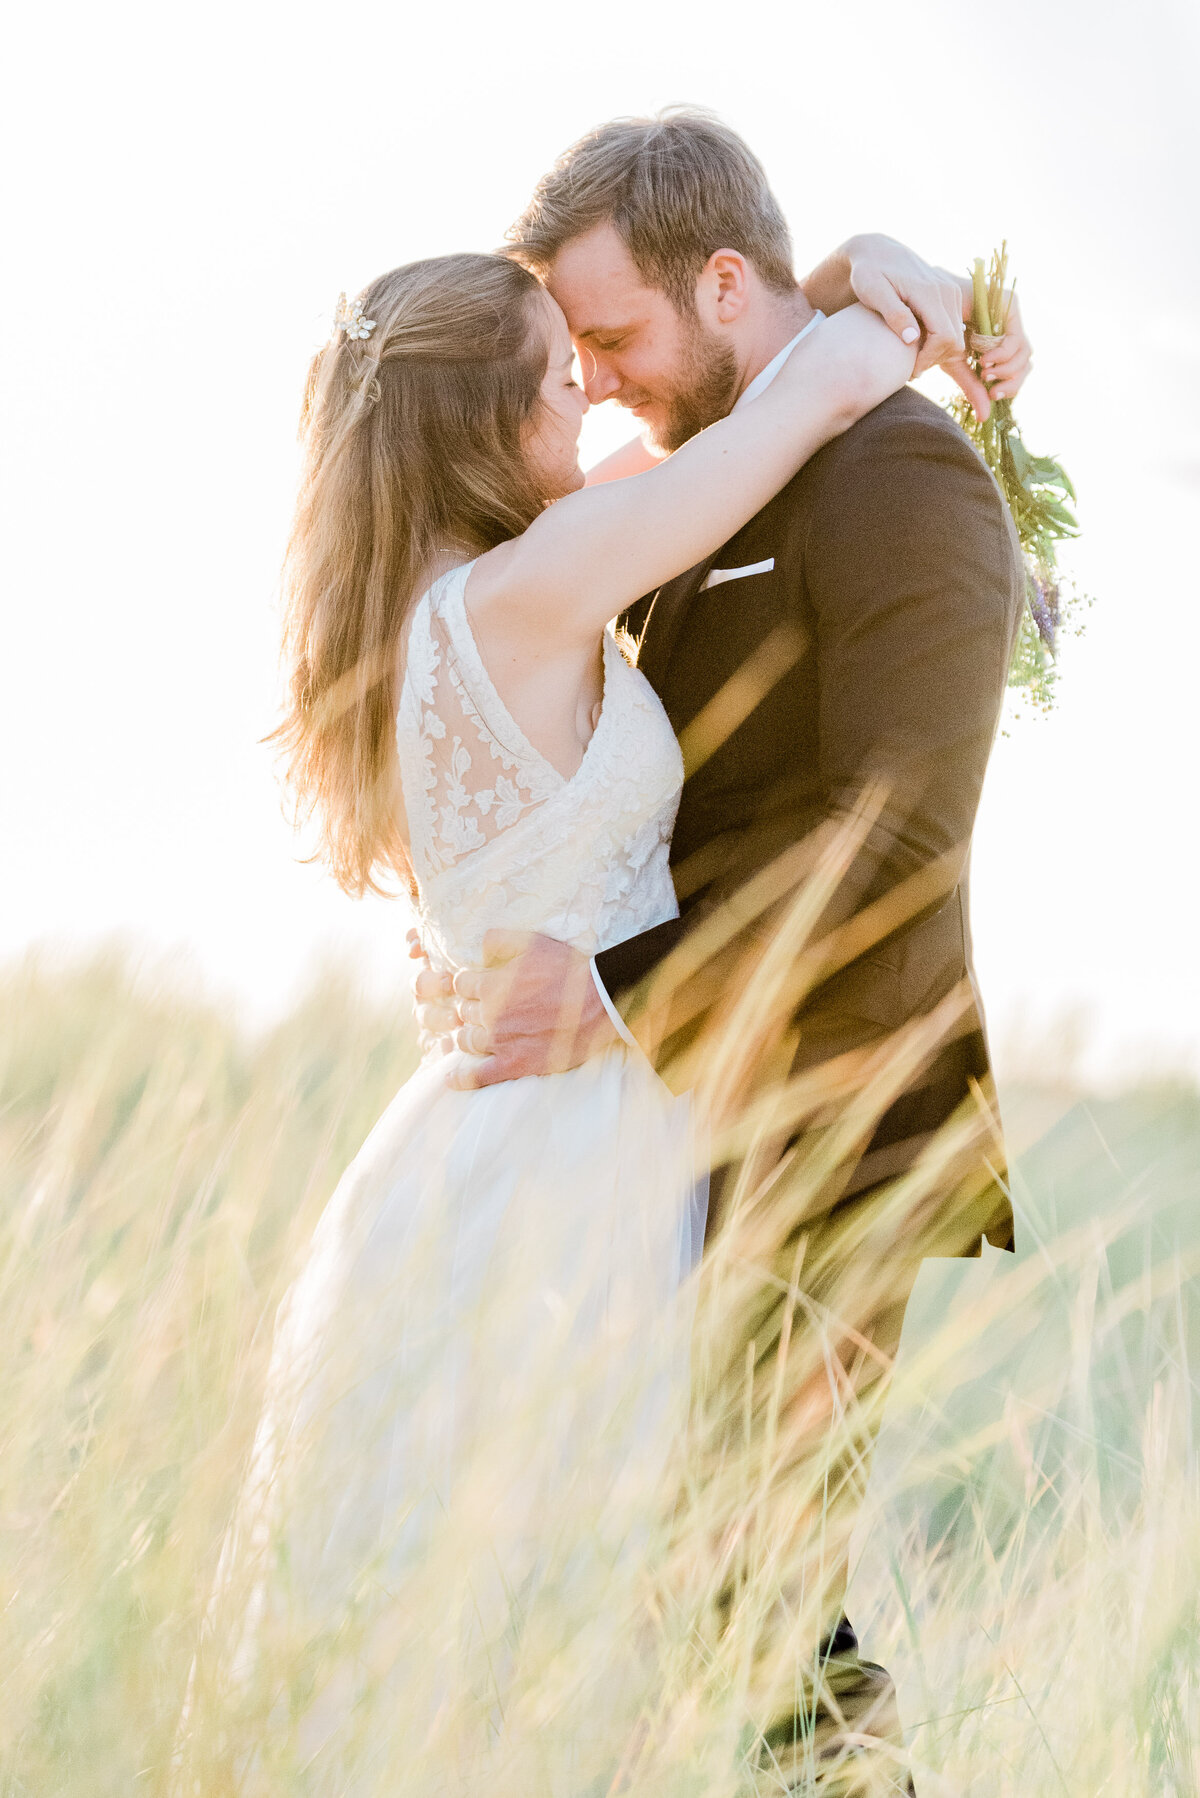 Cannon-Beach-Elopement-Photographer-52